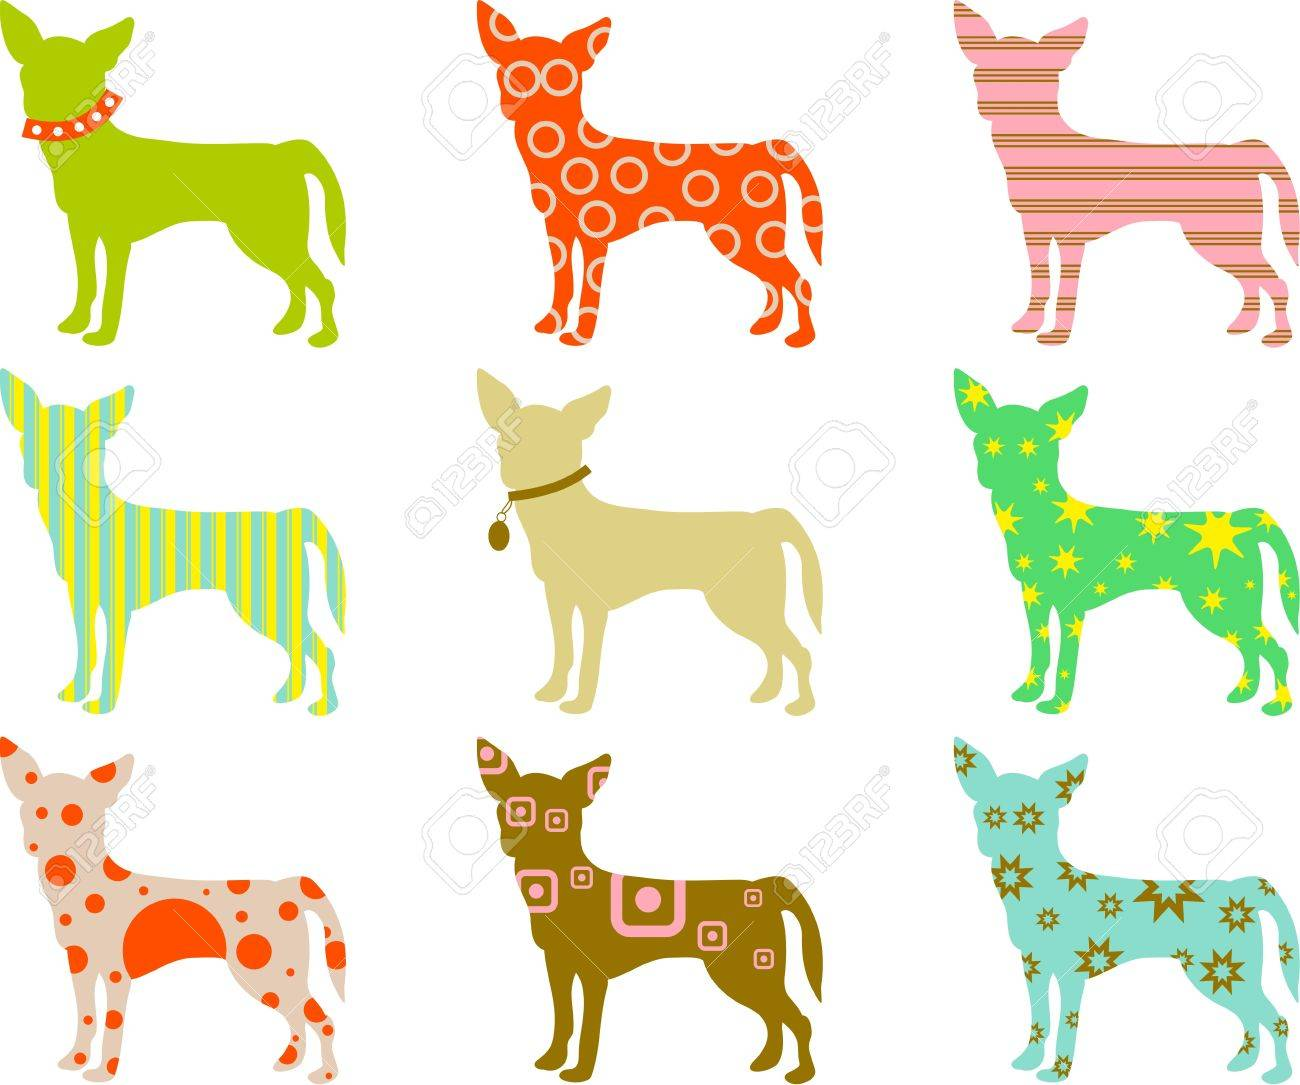 Abstract colourful patterned chihuahua wallpaper background design abstract colourful patterned chihuahua wallpaper background design stock photo 3322241 voltagebd Images